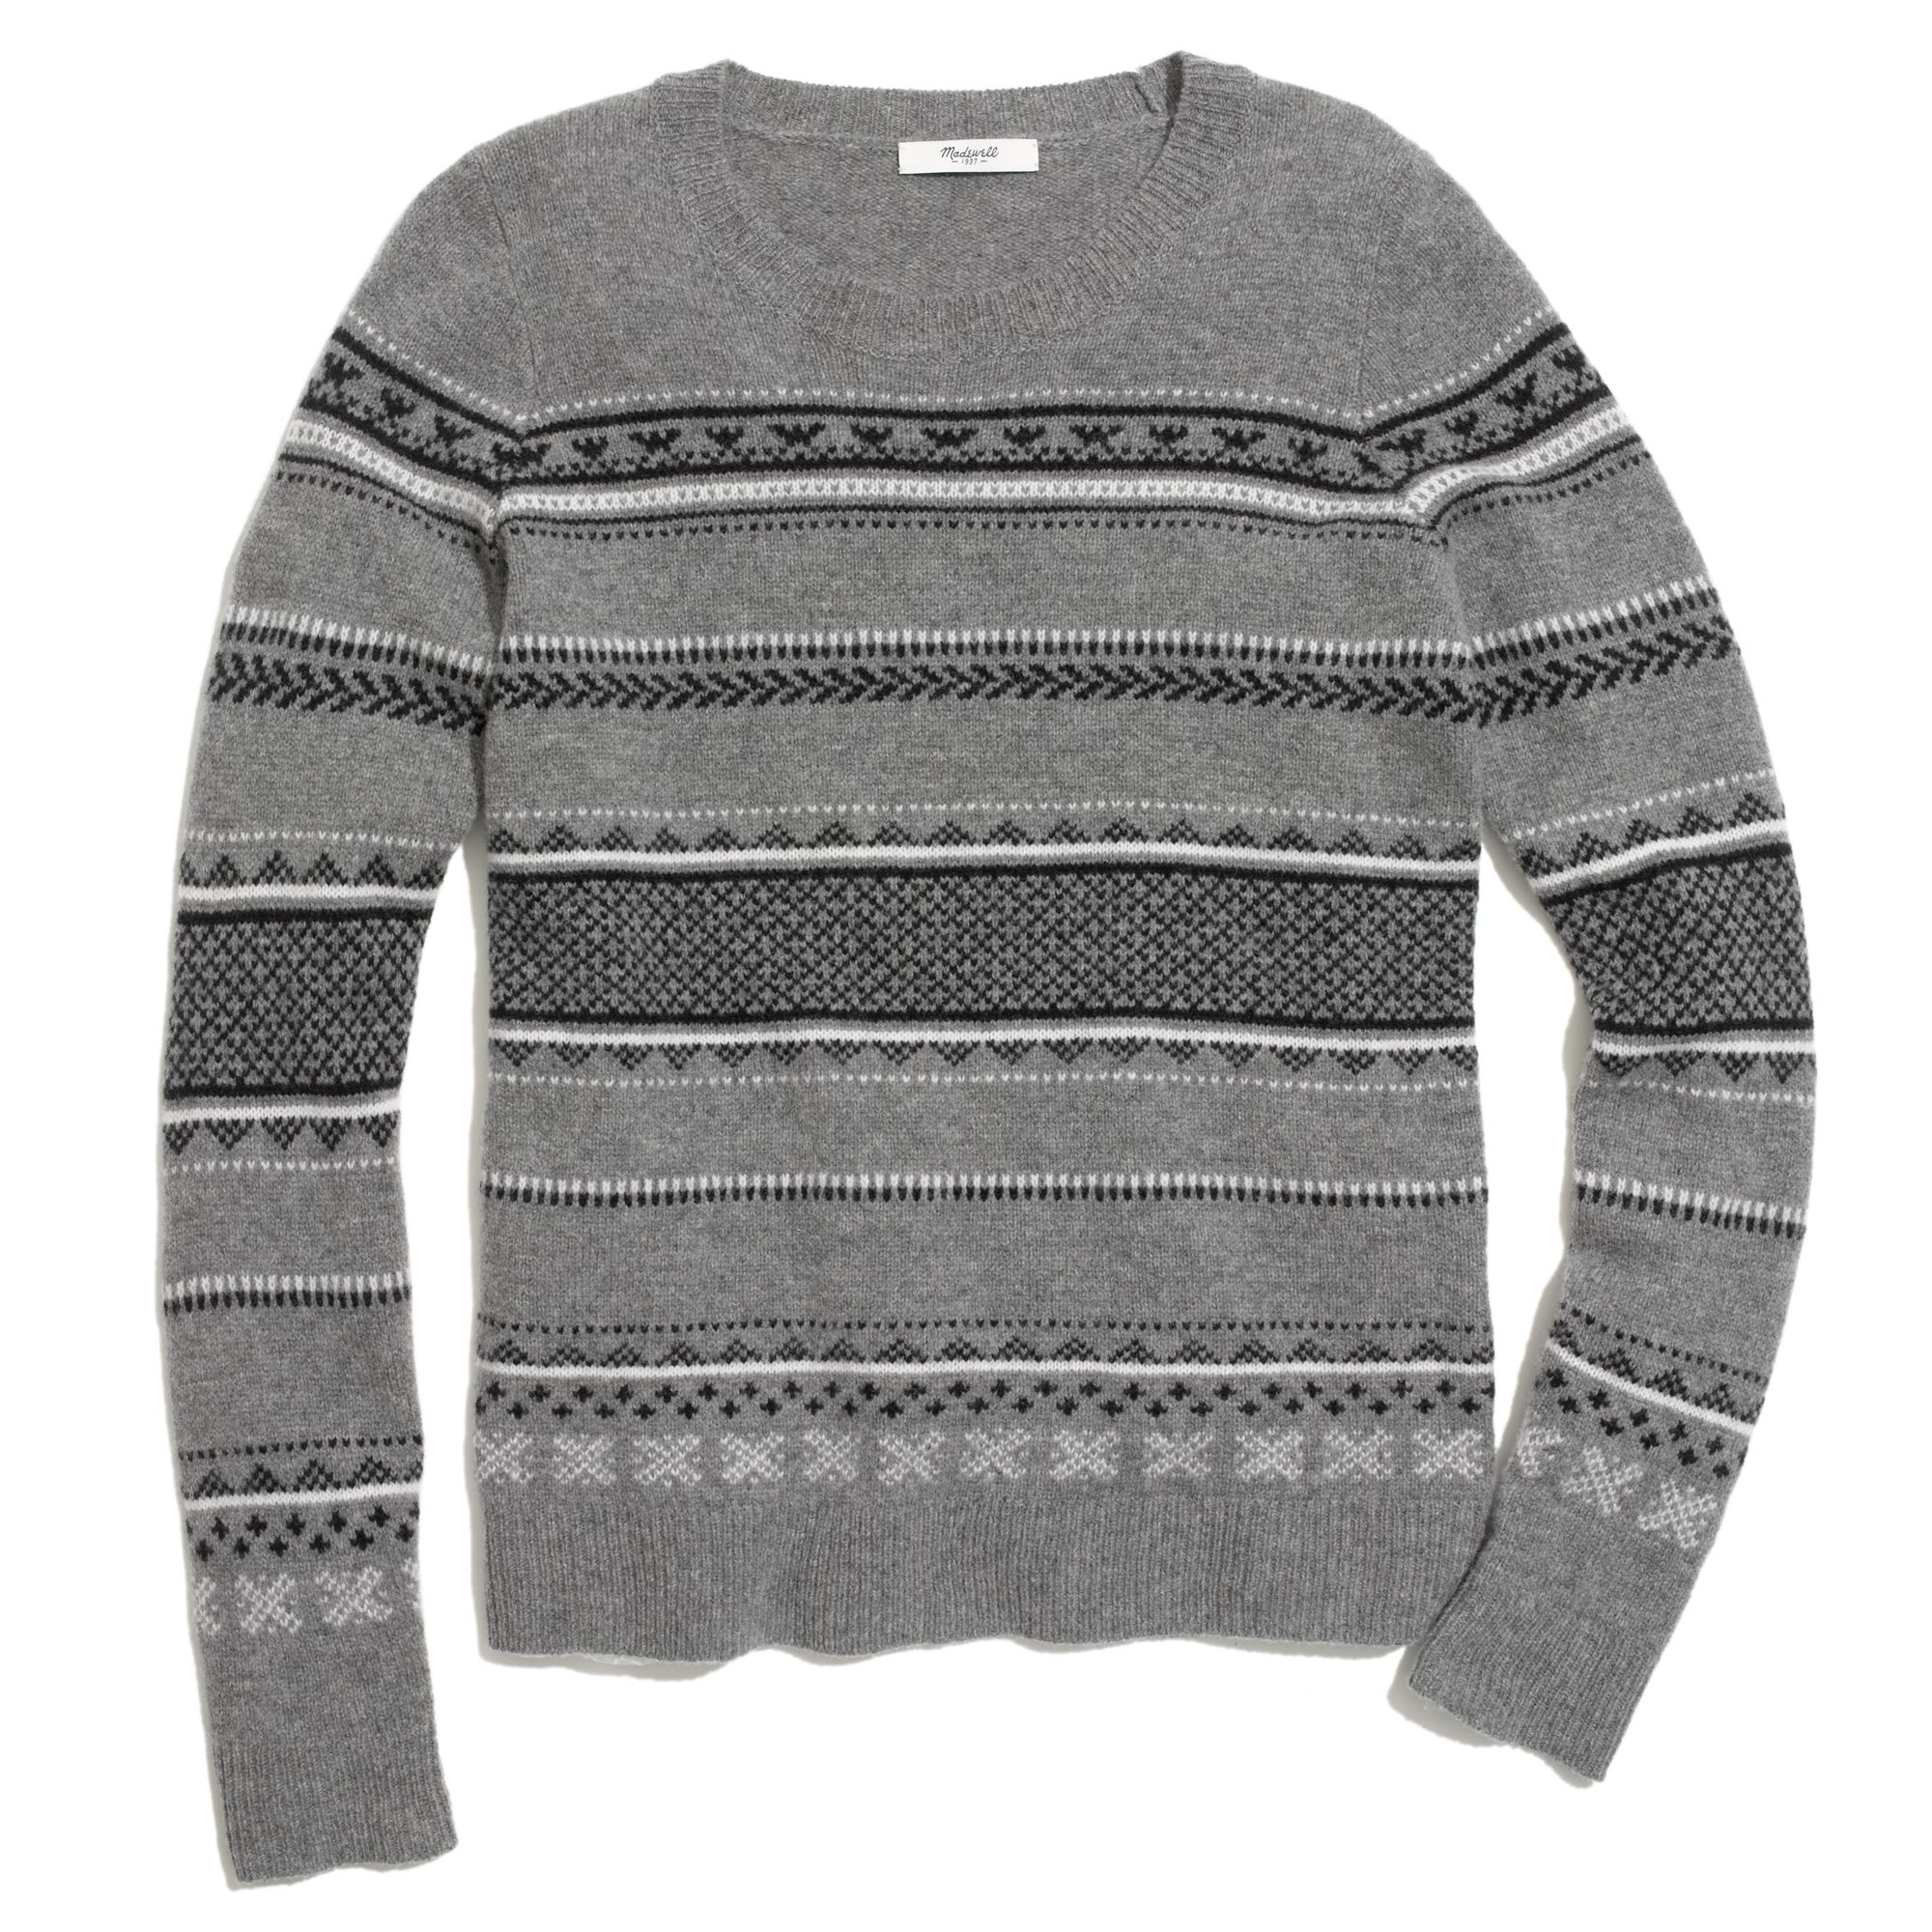 Madewell Fair Isle Striped Sweater in Gray | Lyst